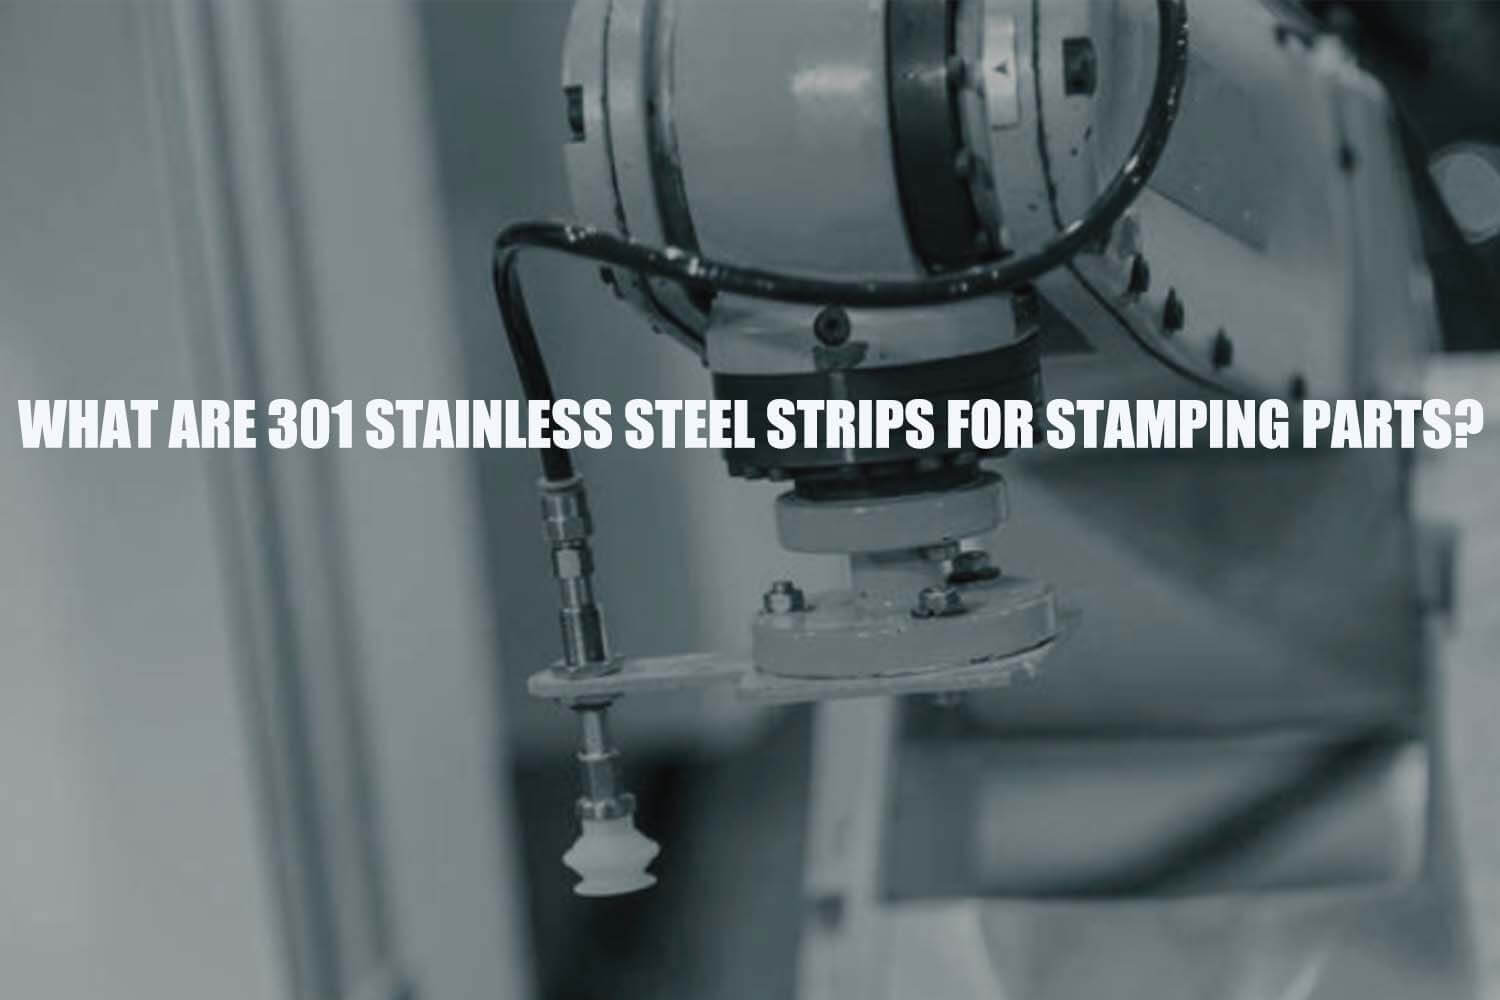 301-stainless-steel-strips-for-stamping-parts